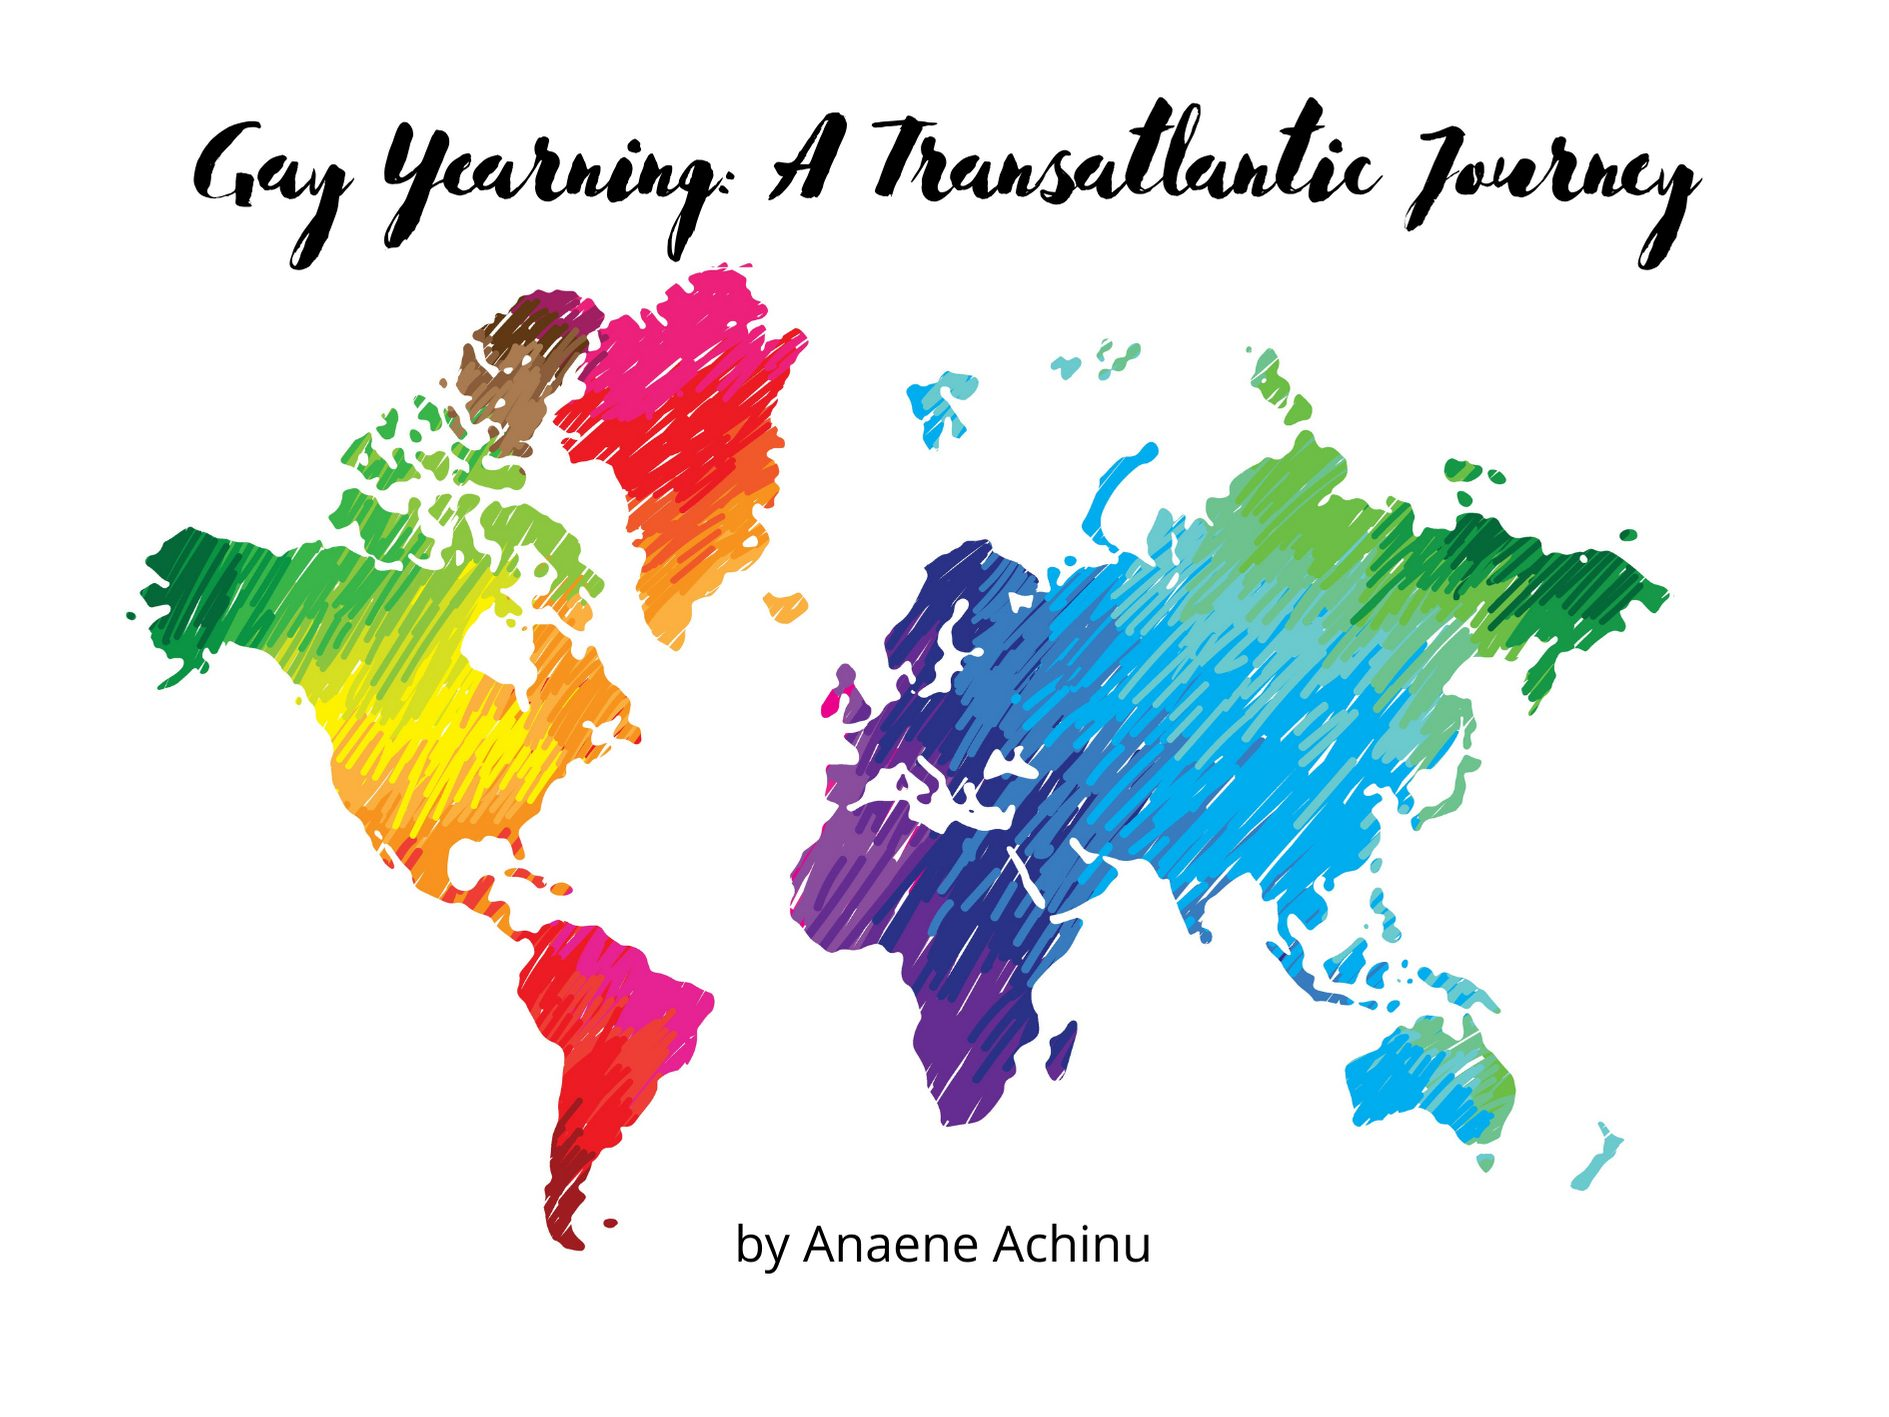 [Guest Blog] Gay Yearning: A Transatlantic Journey by Anaene Achinu